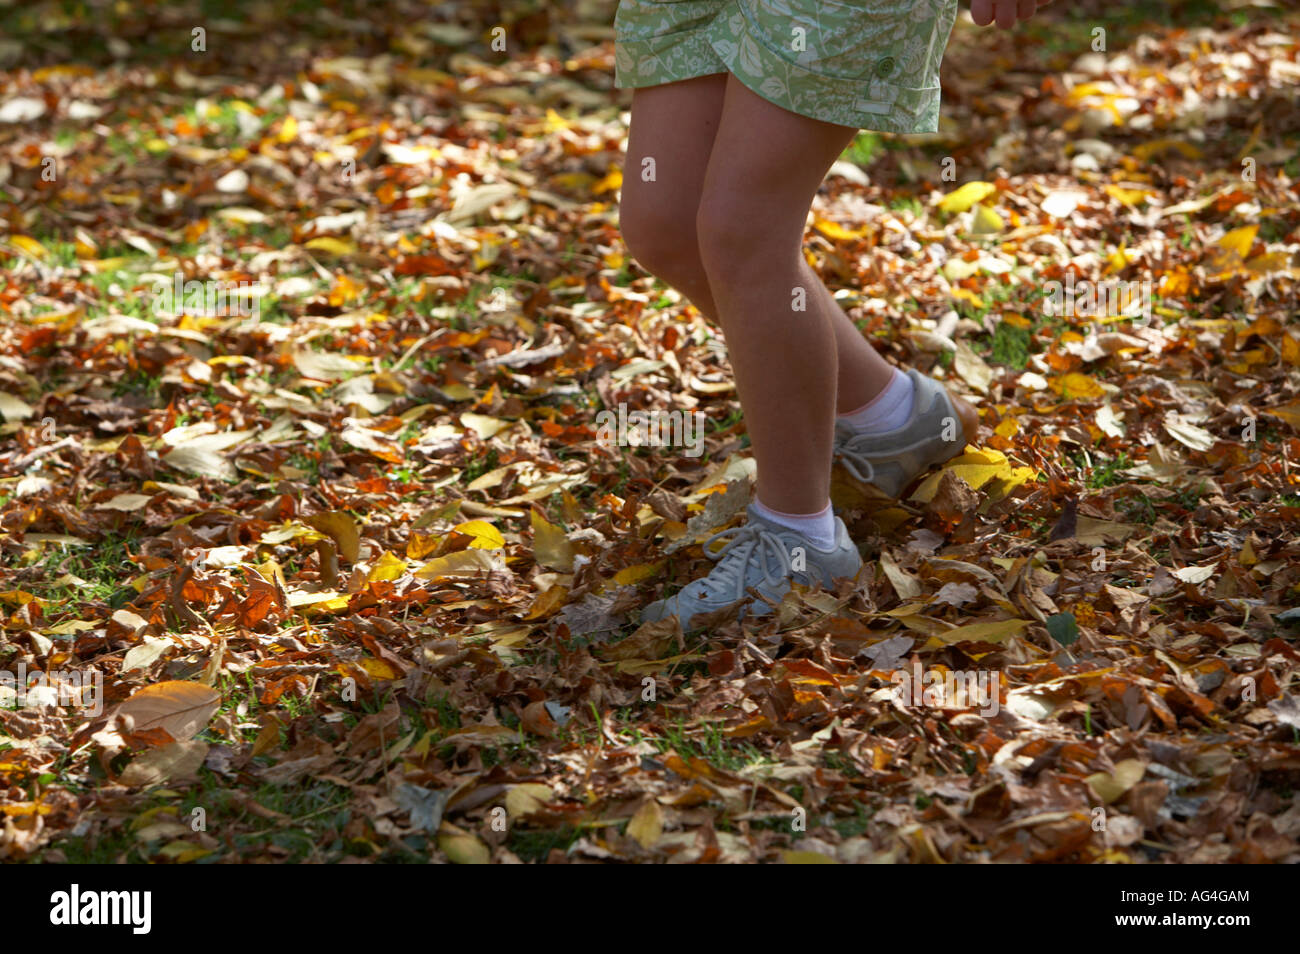 eb040faf0a2 legs of young girl wearing trainers and socks running through carpet of fallen  autumn leaves -